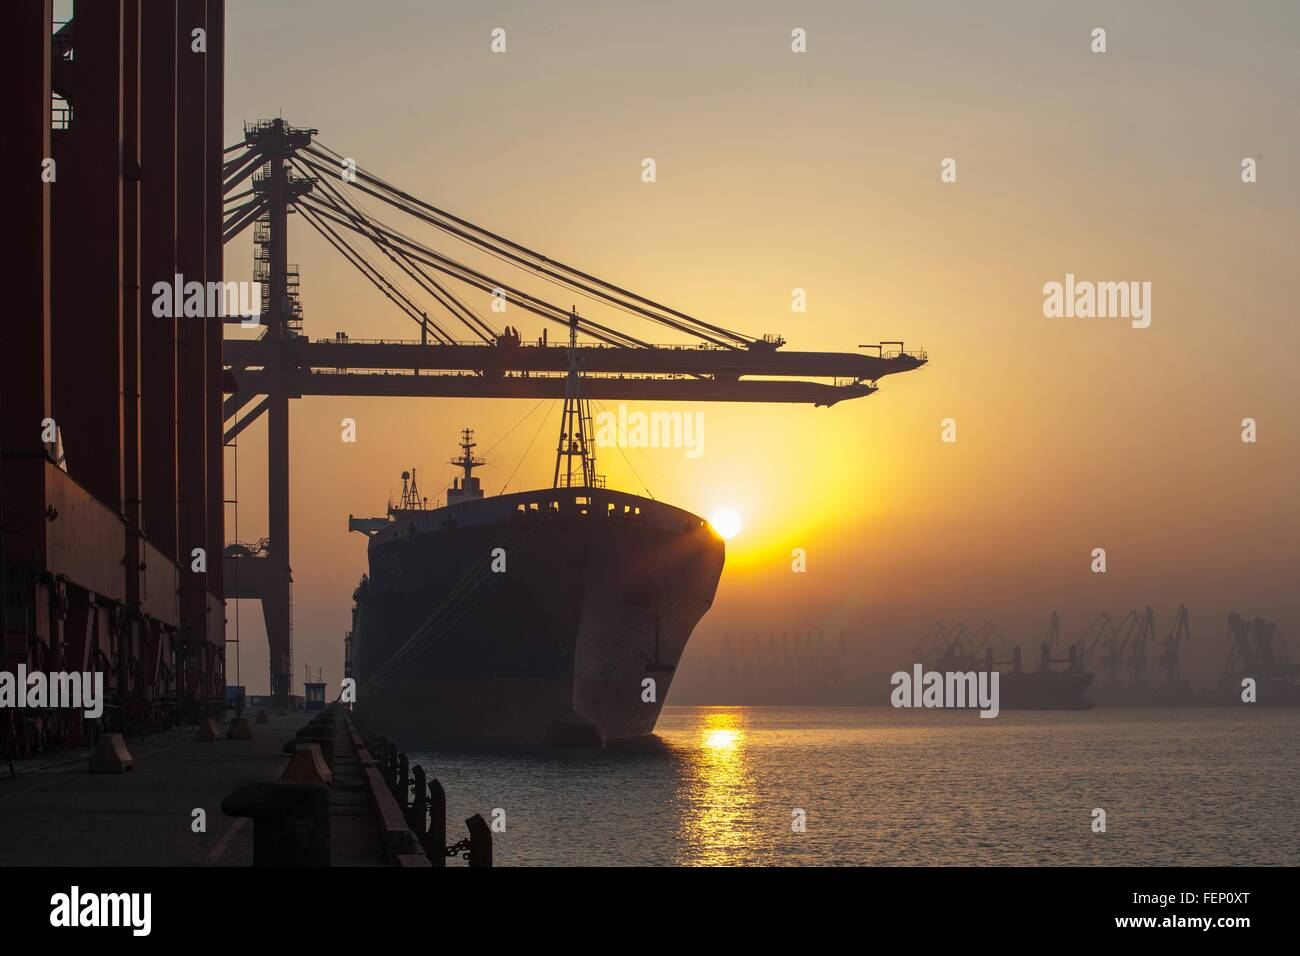 Container ship and cranes at port - Stock Image